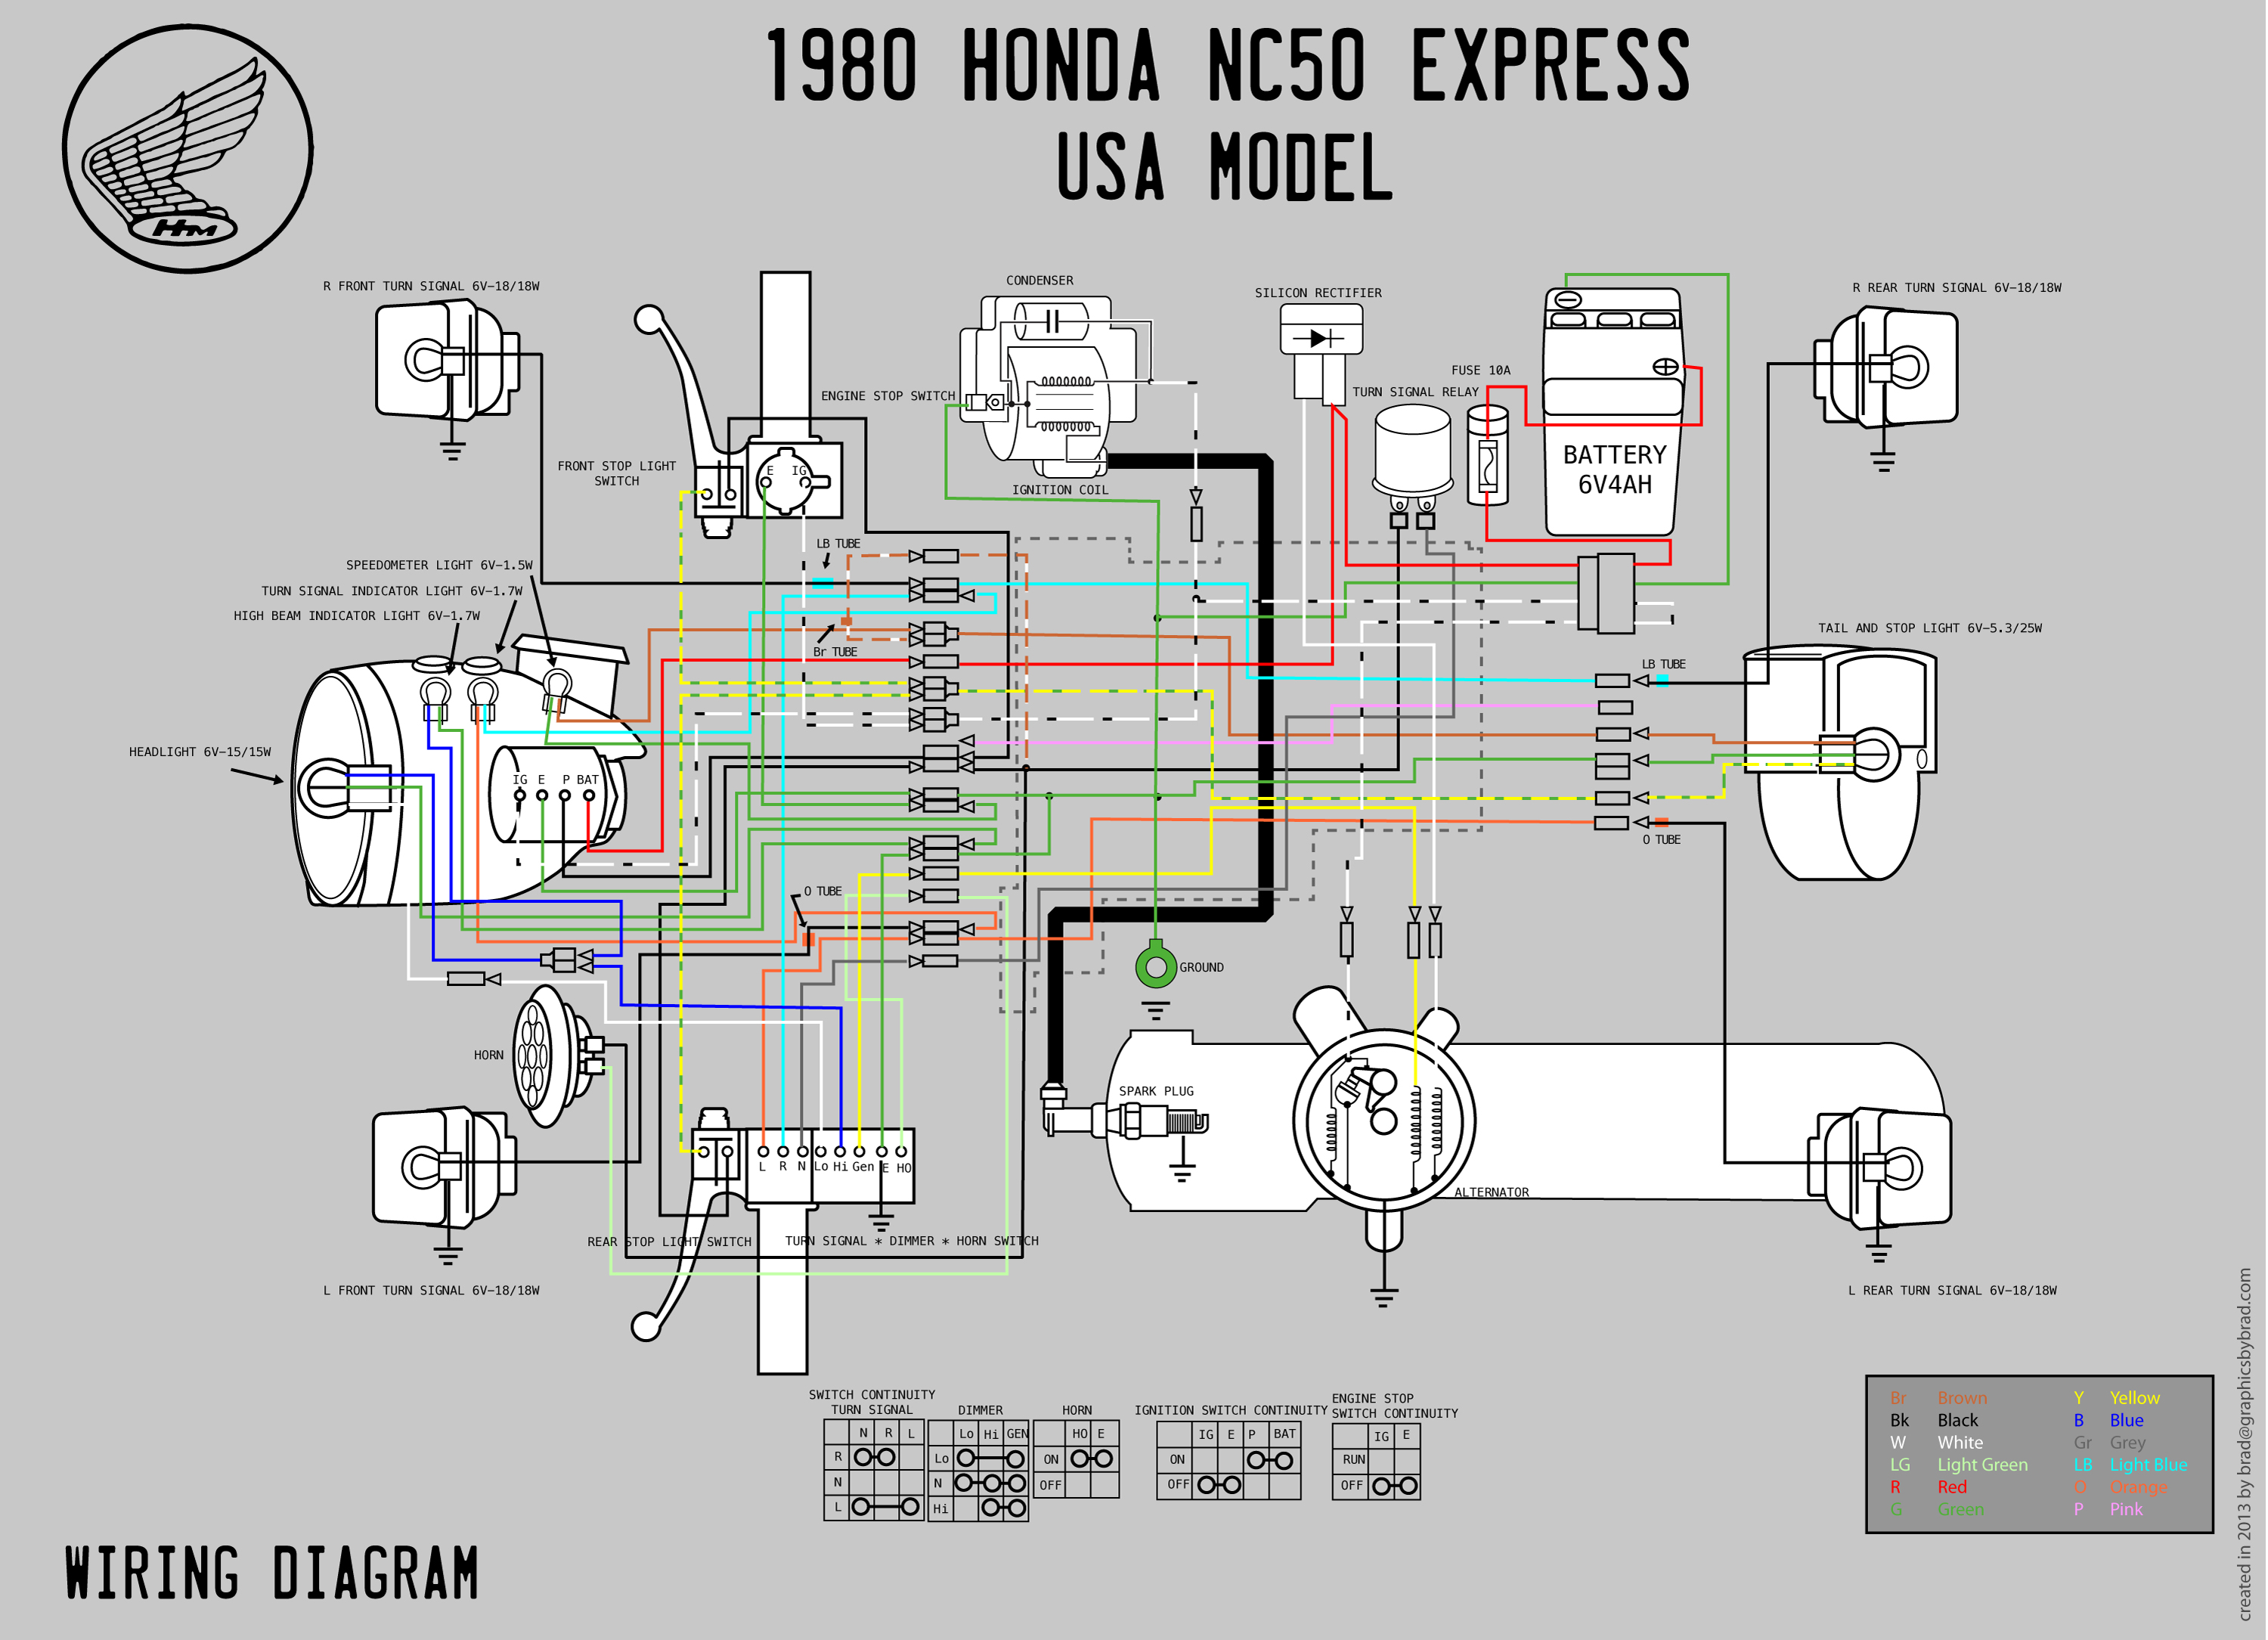 1980 honda nc50 wiring diagram moped wiki 1981 honda passport wiring diagram  1999 honda passport radio wiring diagram